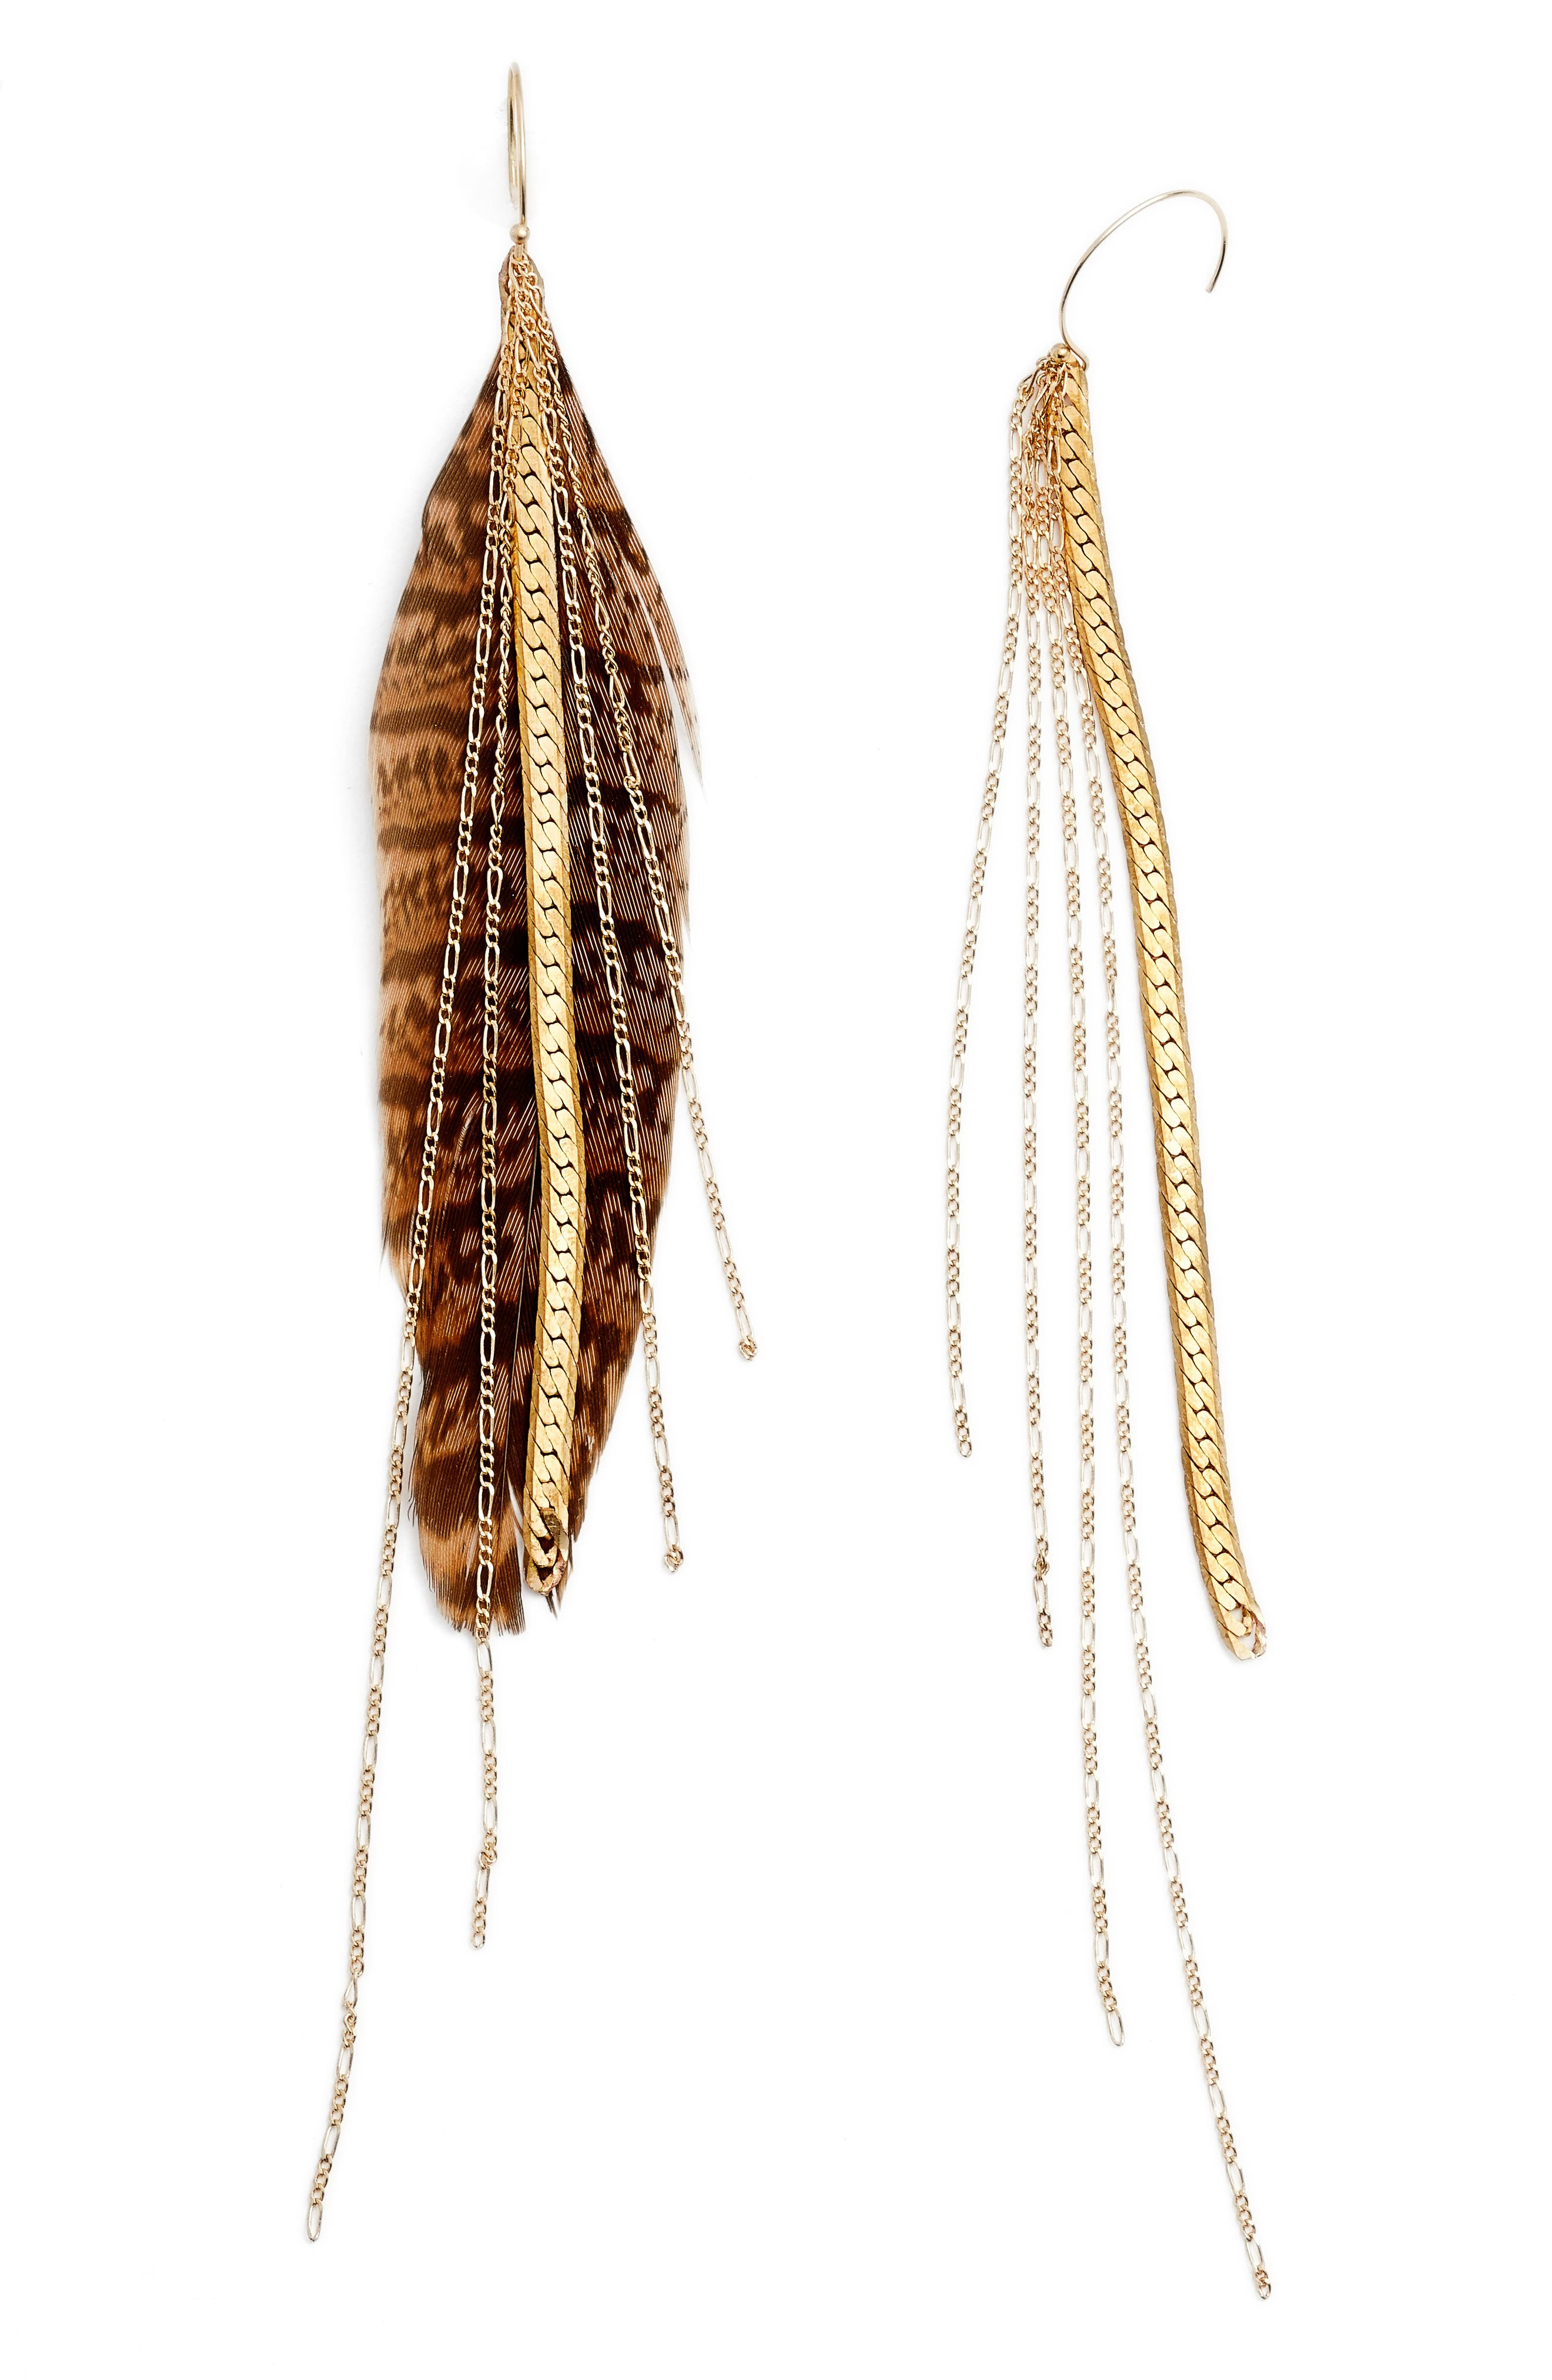 Chain & Feather Earrings,                             Main thumbnail 1, color,                             710